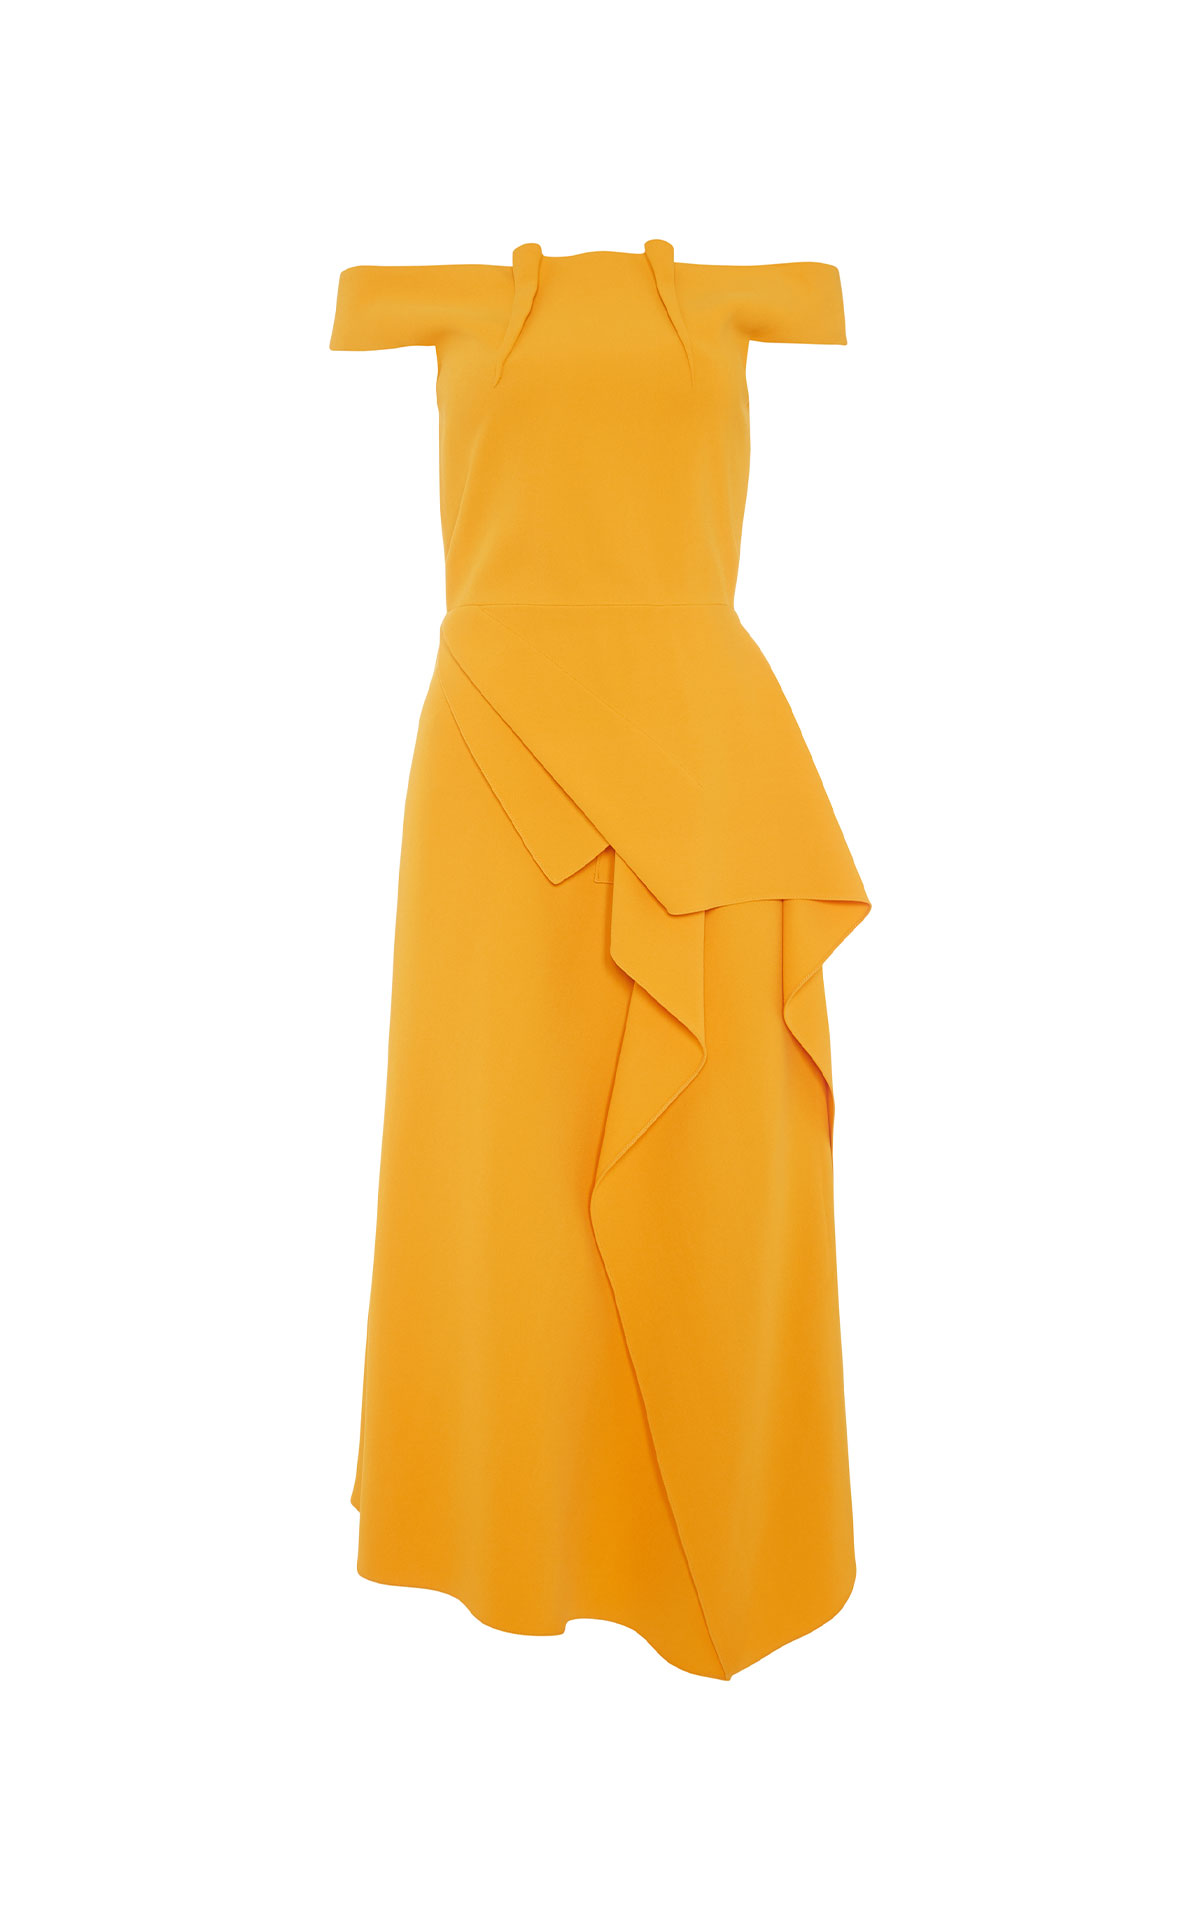 Roland Mouret Arch marigold dress from Bicester Village